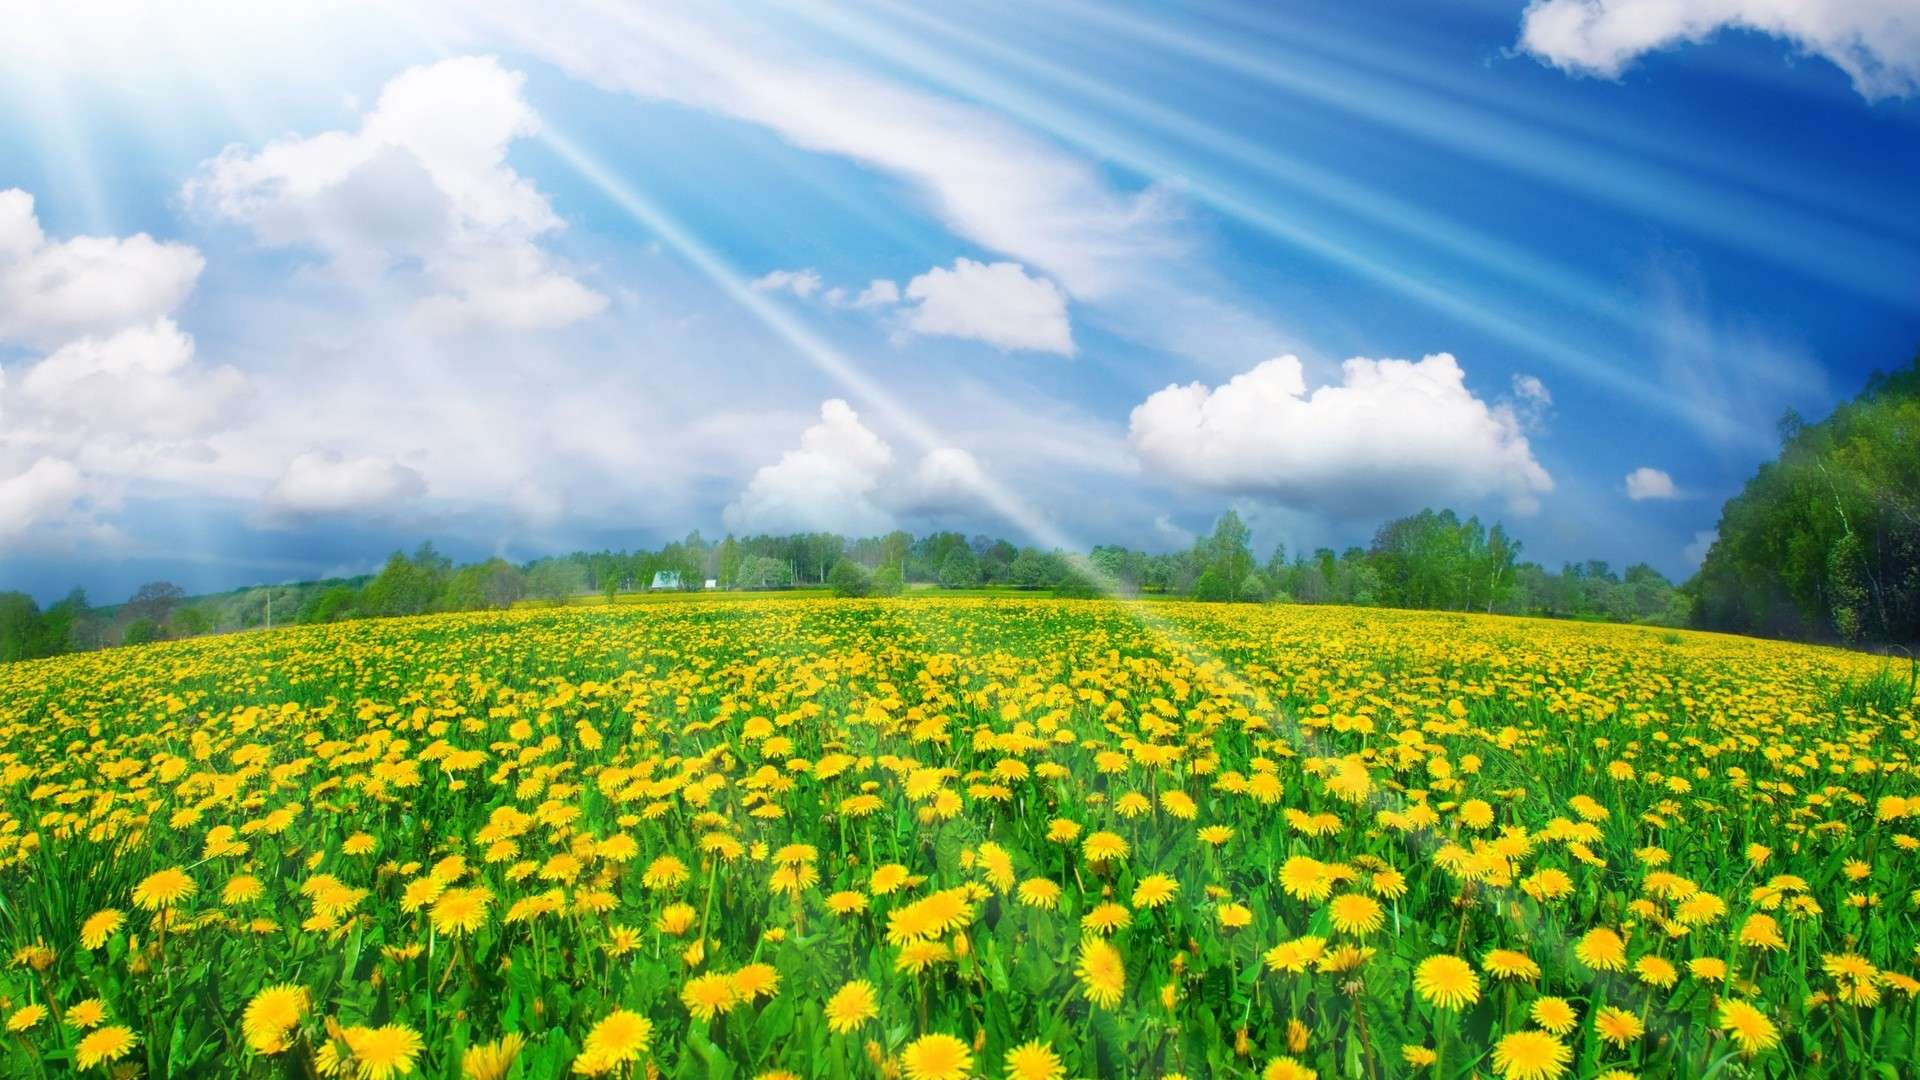 Spring Background free download  PixelsTalk Spring Flower Wallpaper Backgrounds  Wallpaper  1920x1080